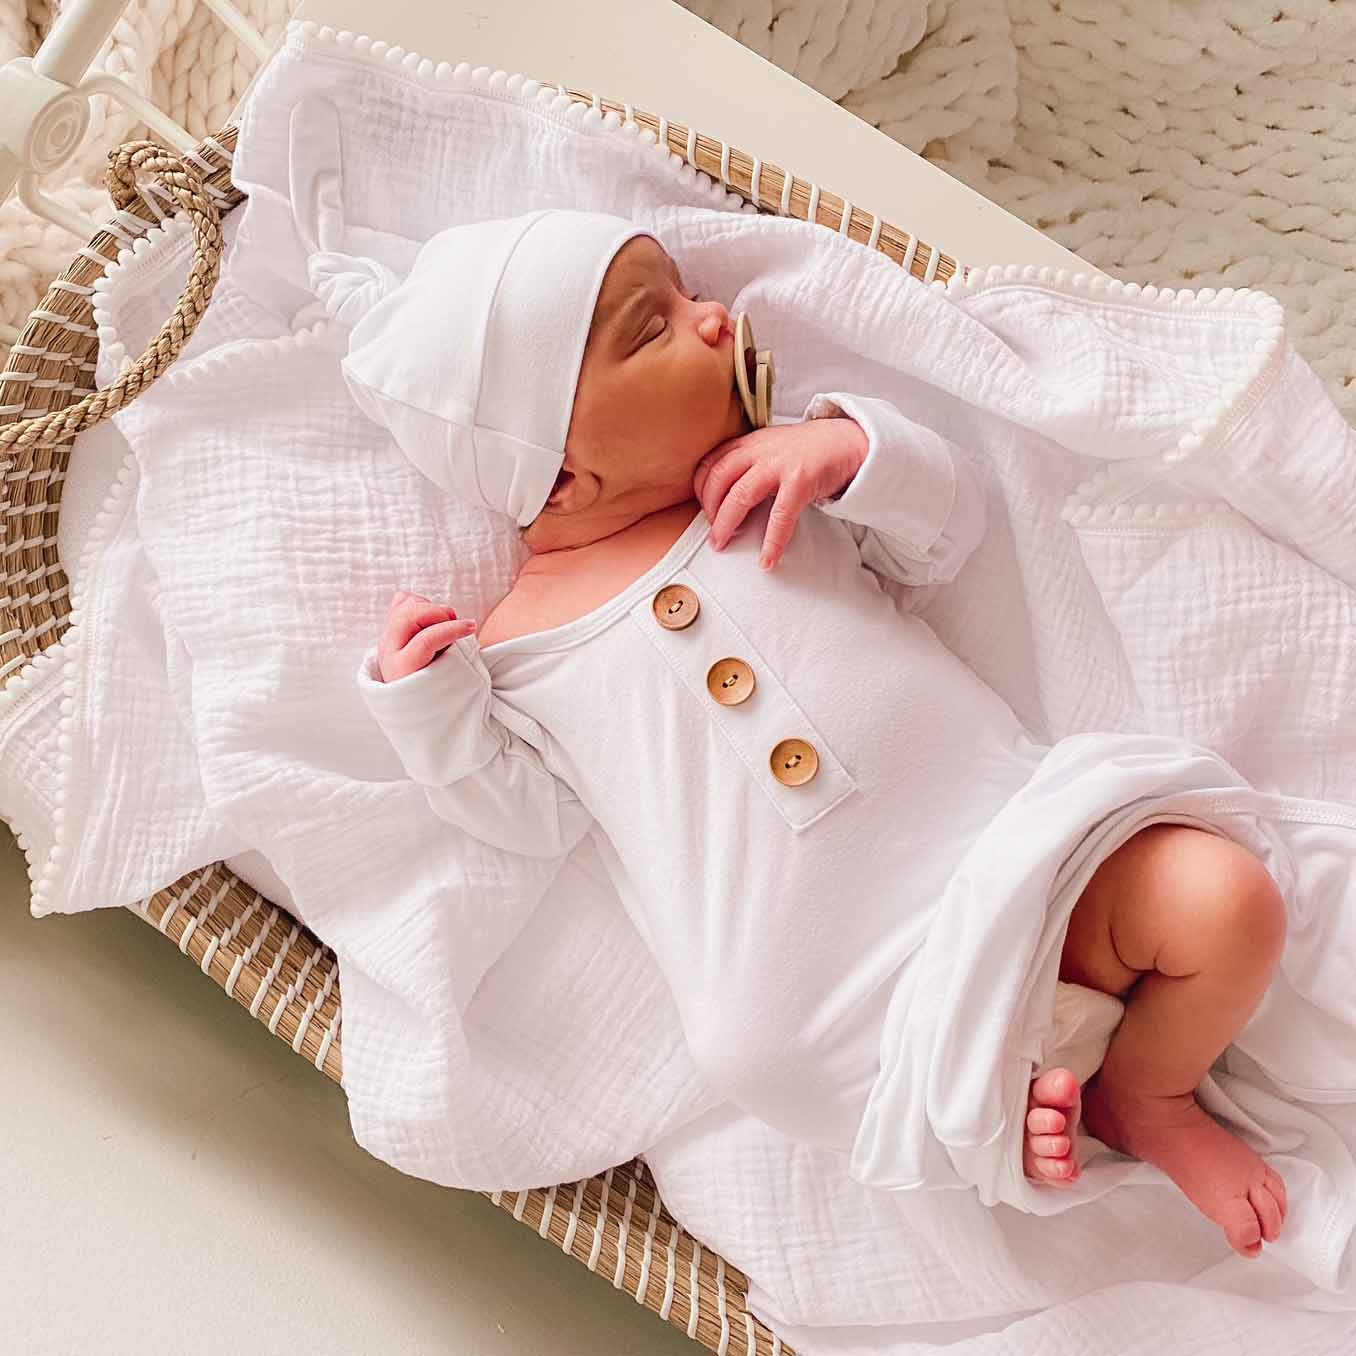 0-3 Months Avocado Brown/&White, 60 Koloyooya Newborn Baby Striped Gown Swaddle Wrap Knotted Sleepwear Sleeping Bags with Headband Hat